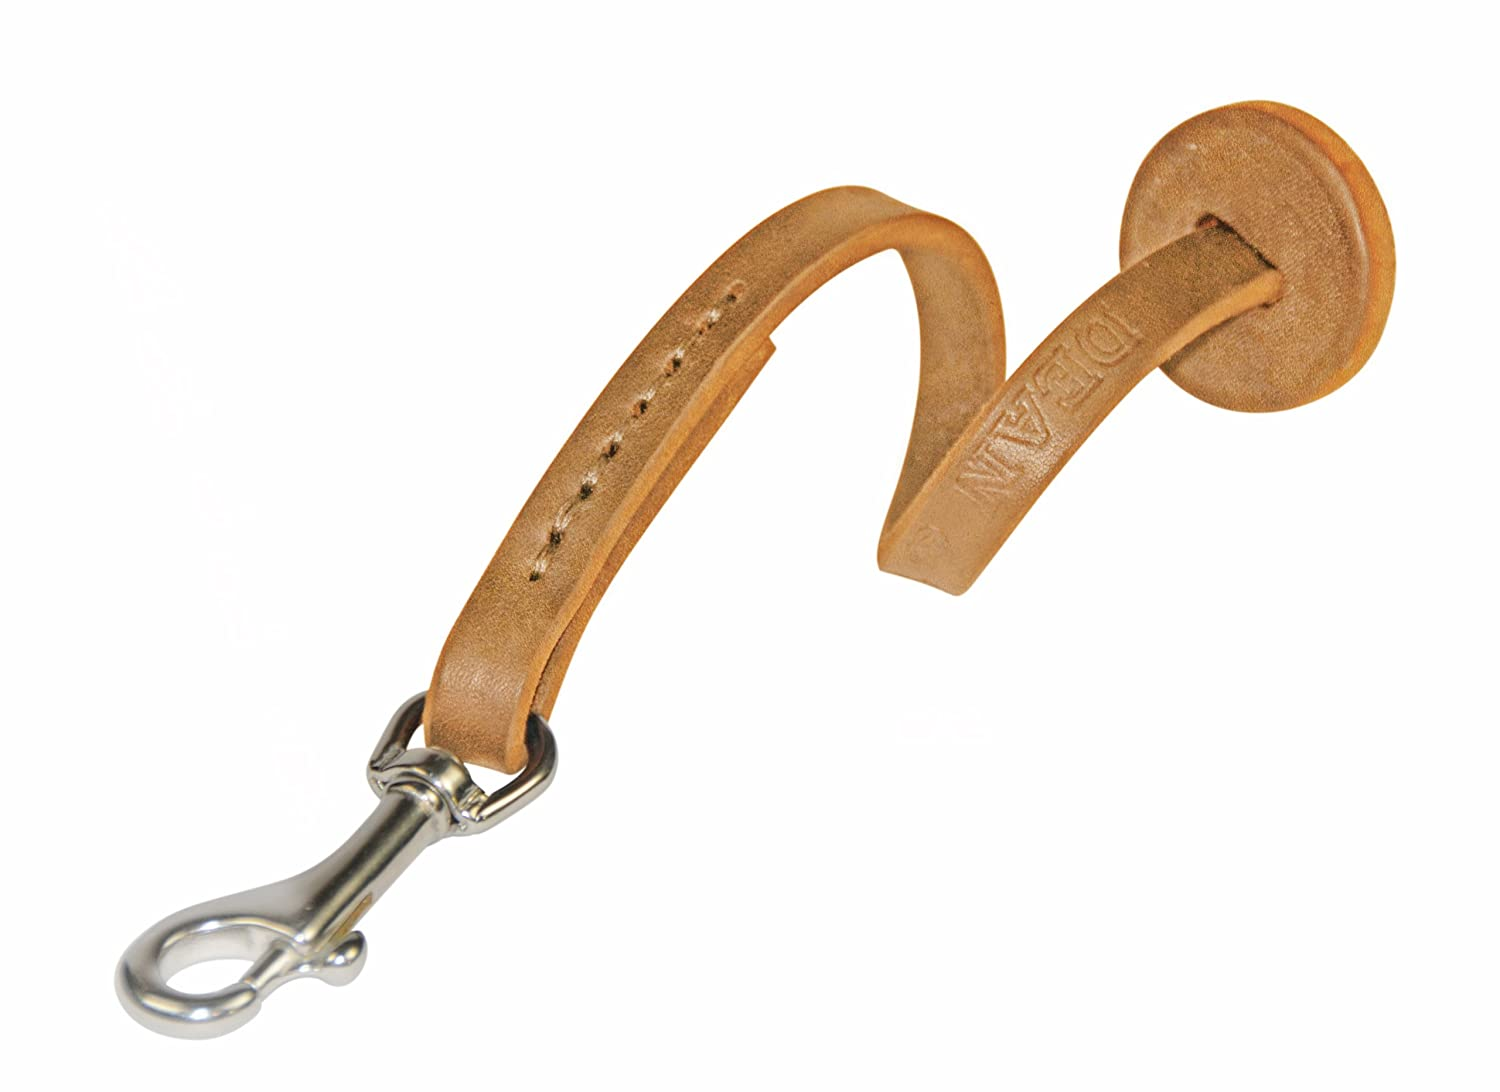 Dean and Tyler Hand Control Dog Leash, Tan 1-Foot with Stainless Steel Hardware